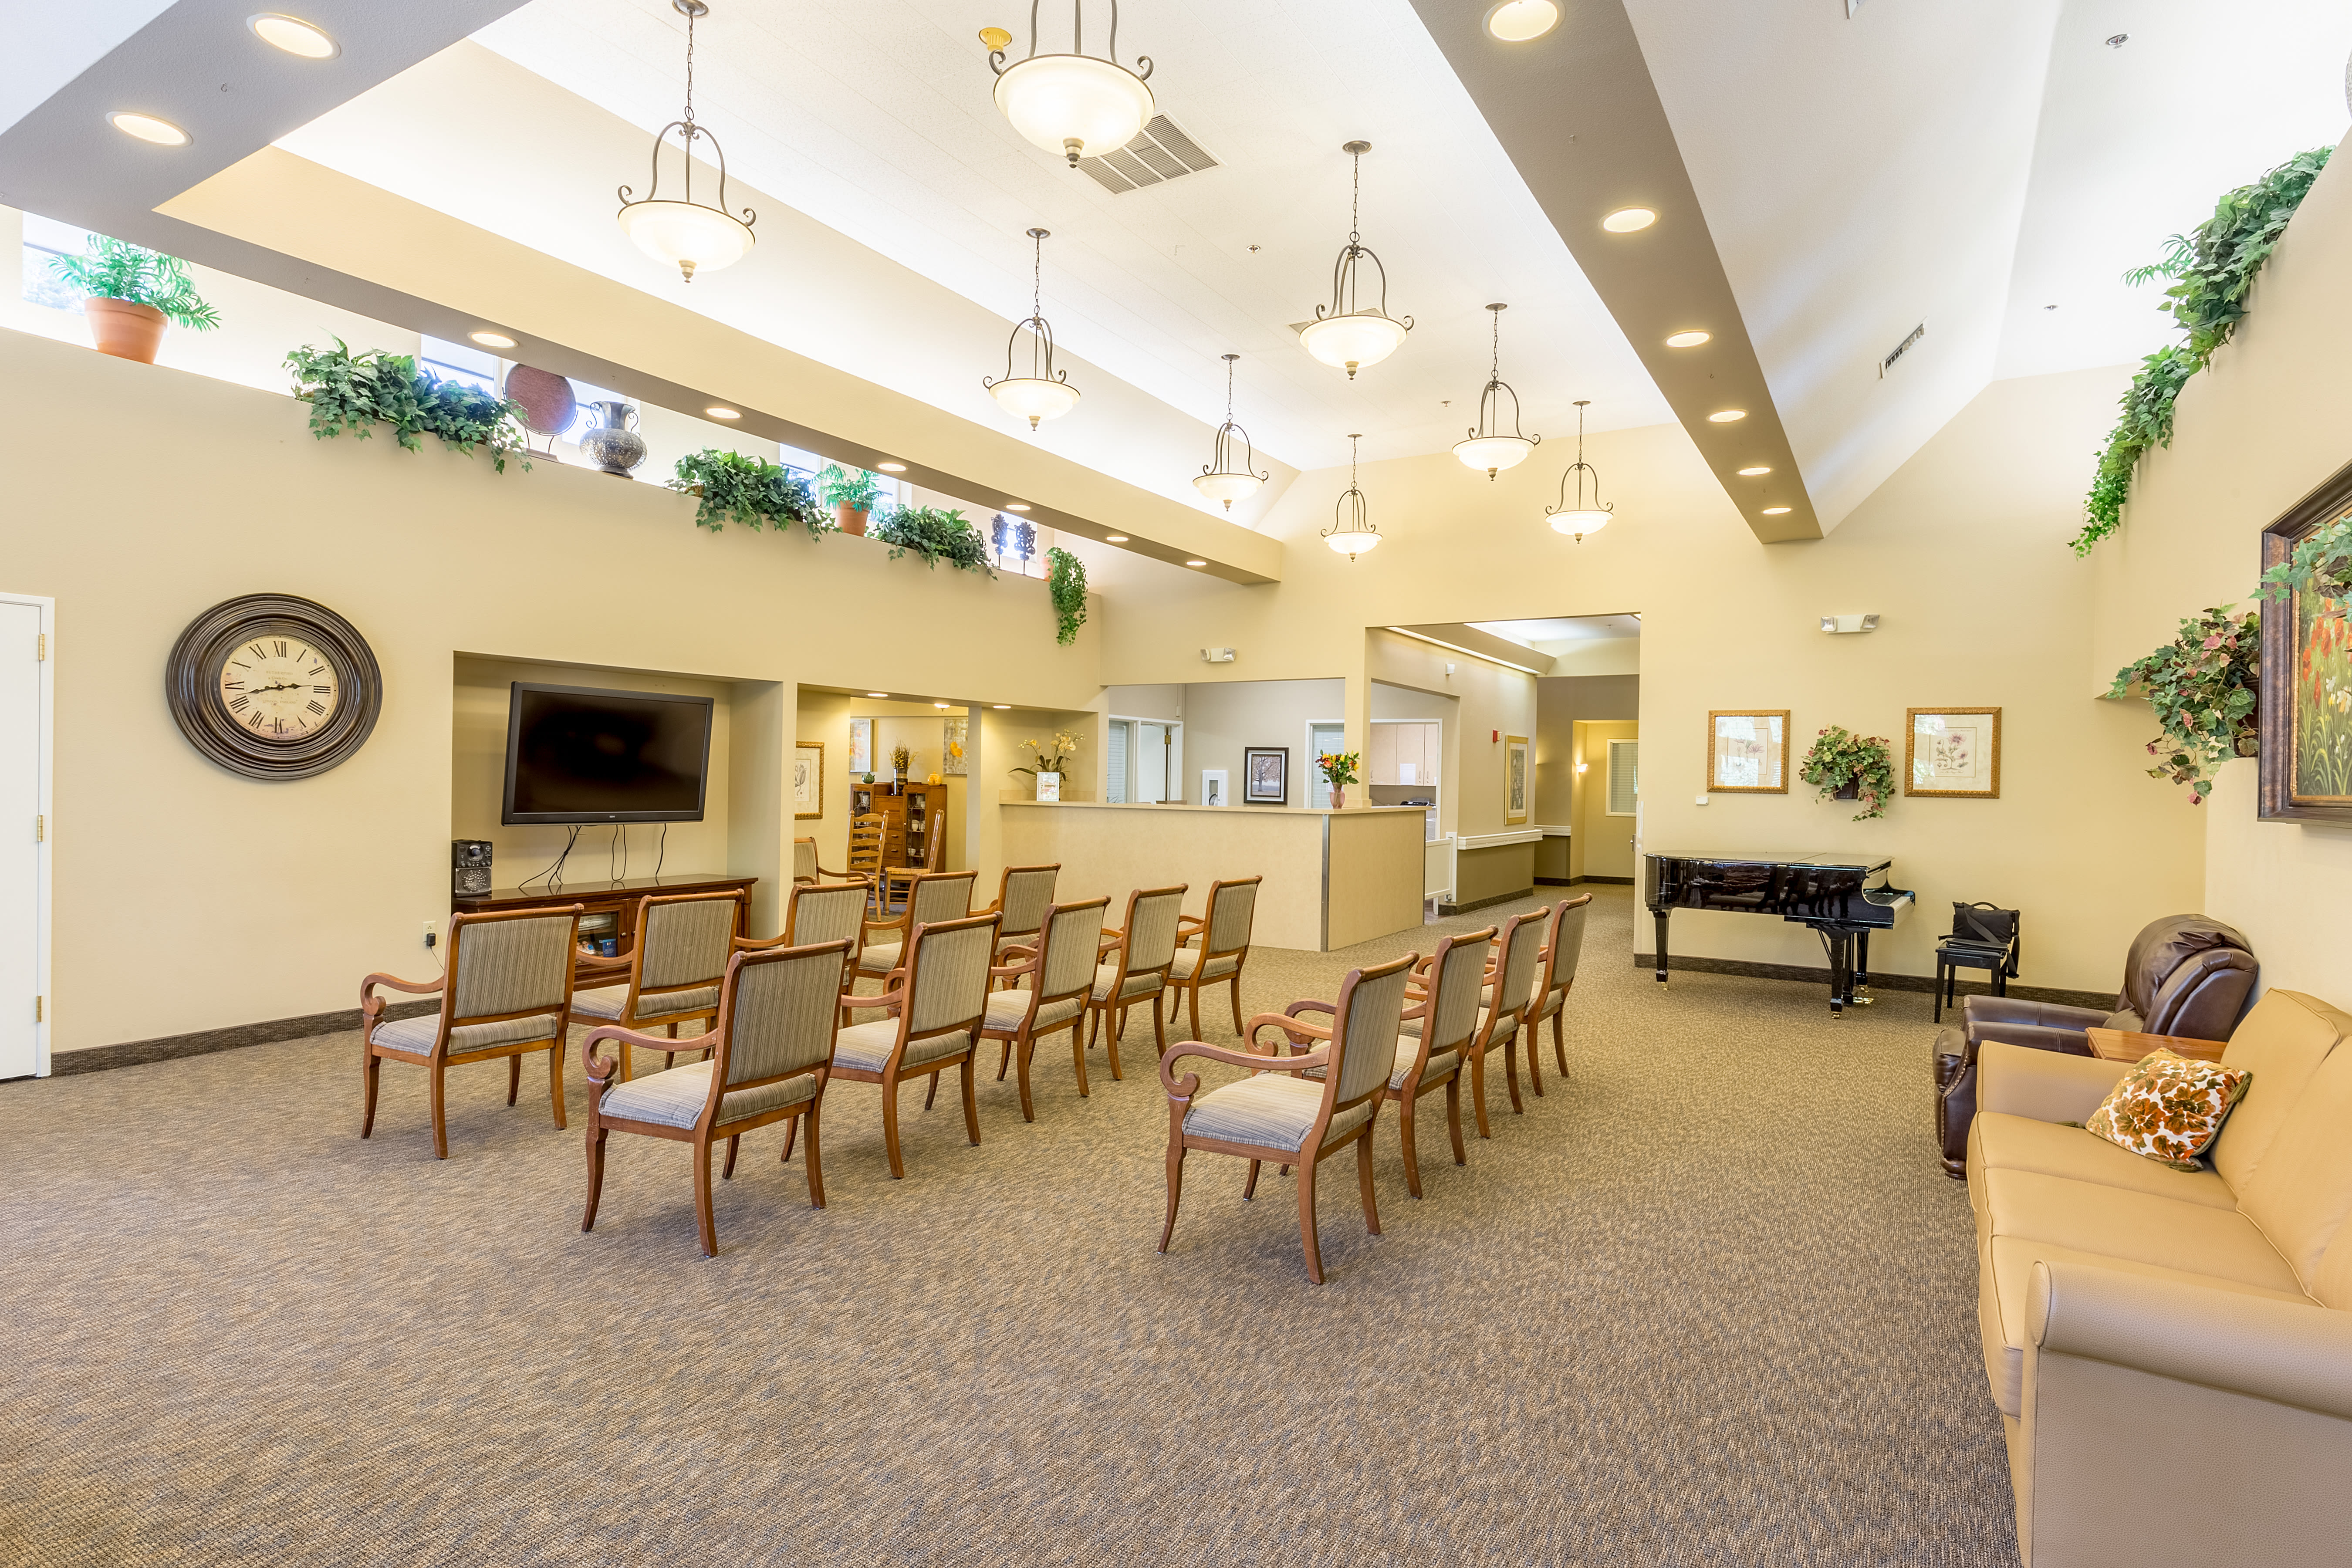 Pacific Gardens Alzheimer's Special Care Center offers a movie theatre in Portland, Oregon